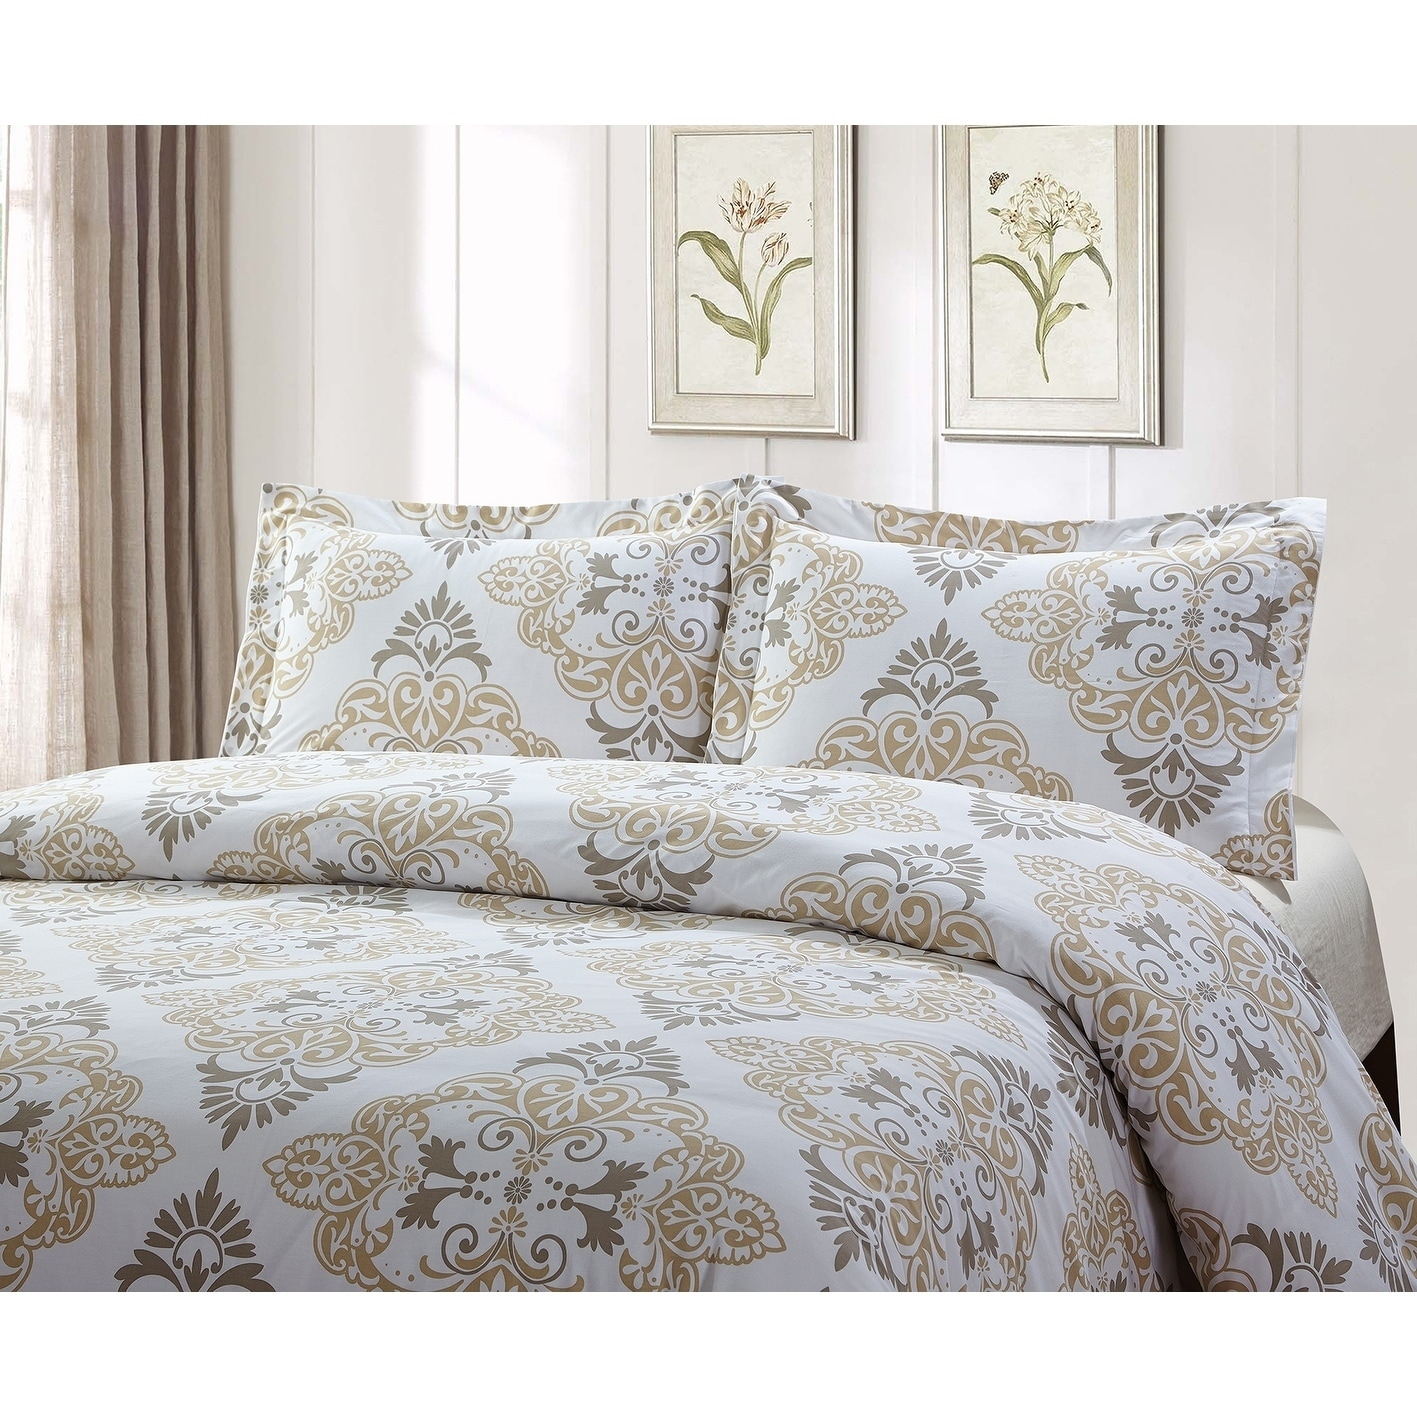 Style Quarters Suri 3pc Duvet Set Gray And Taupe Damask Print 100 Cotton Button Closure Machine Washable King Overstock 21861840